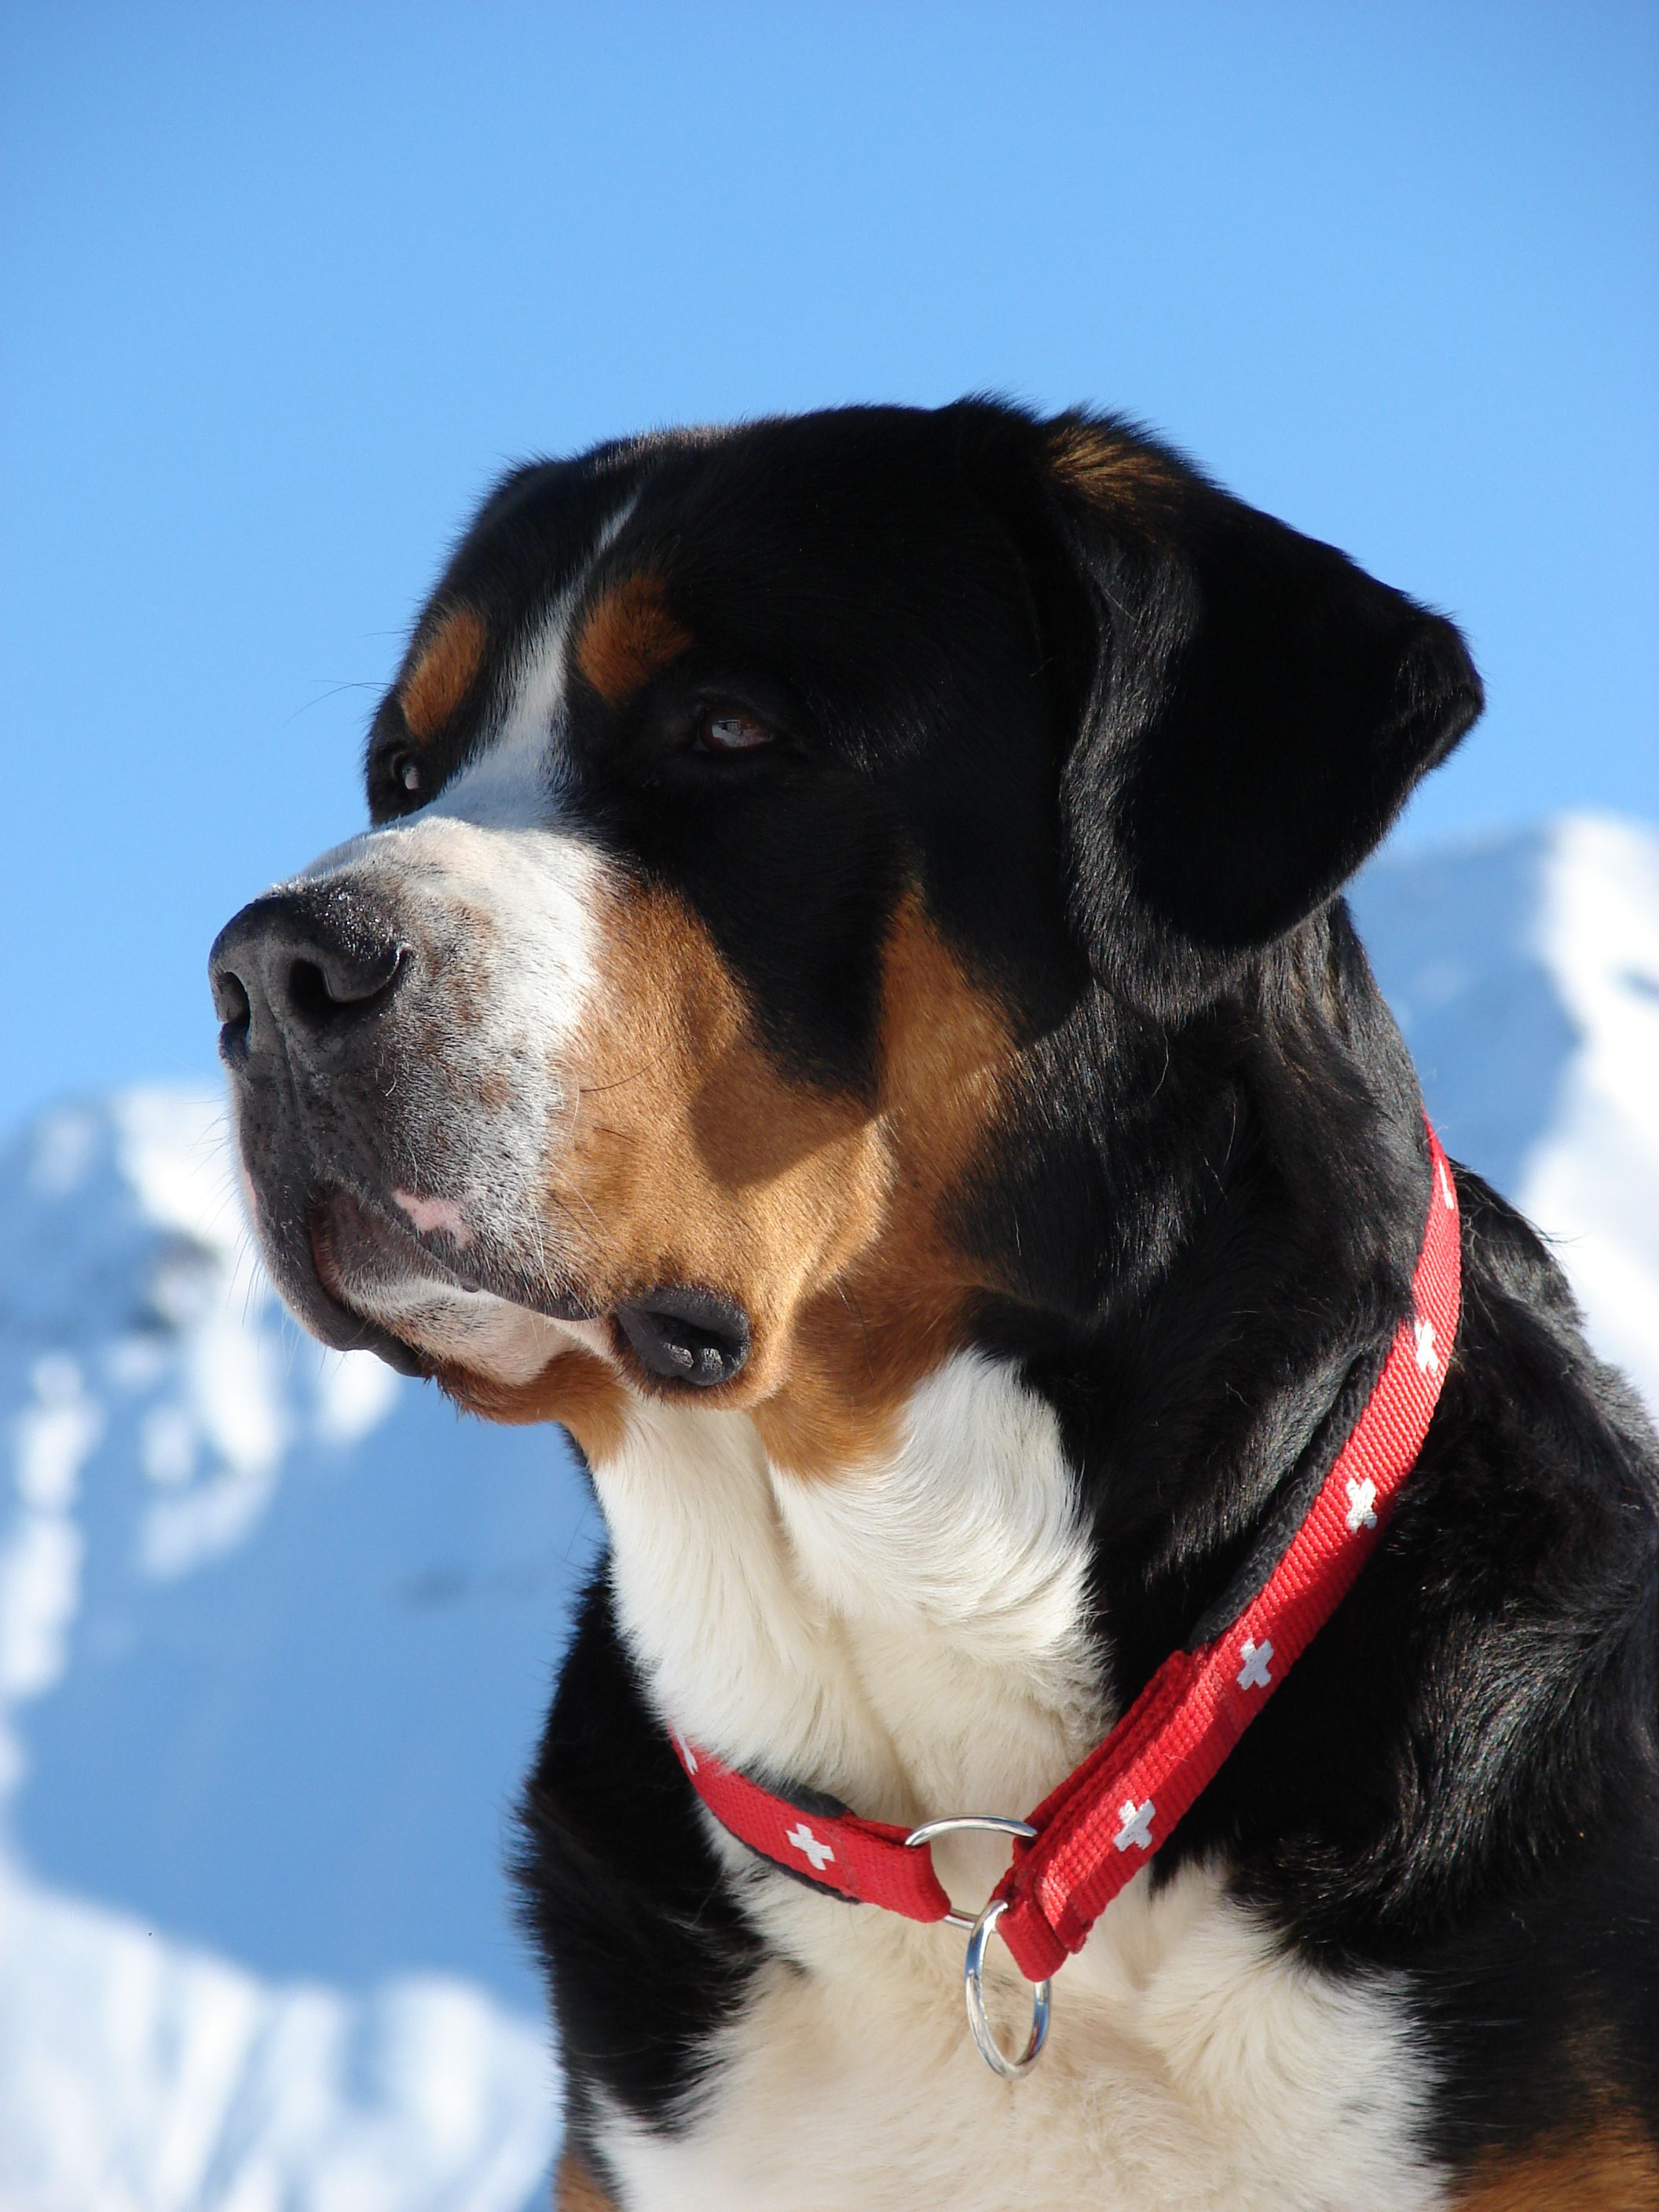 Greater Swiss Mountain Dog Grosser Schweizer Sennenhund Grand Bouvier Sui Schweizer Sennenhund Grosser Schweizer Sennenhund Entlebucher Sennenhund